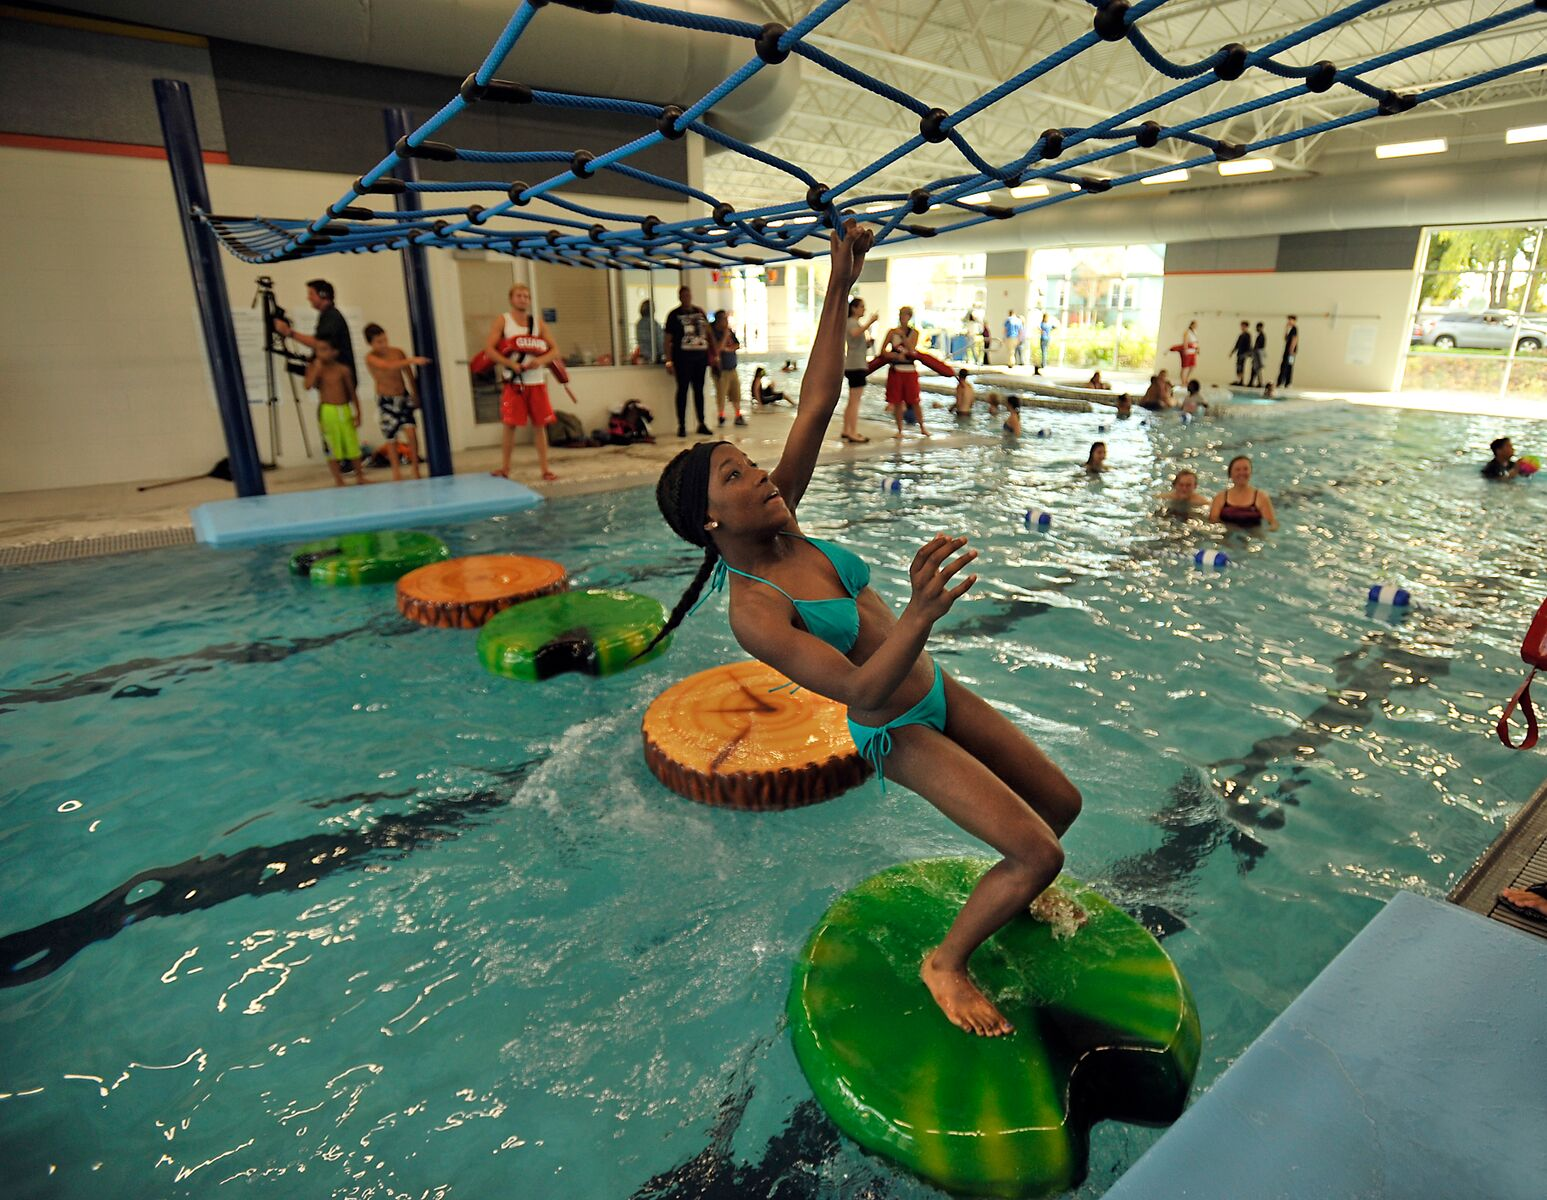 Kids Pools With Slides swimming in seattle: insider's guide to kid-friendly indoor